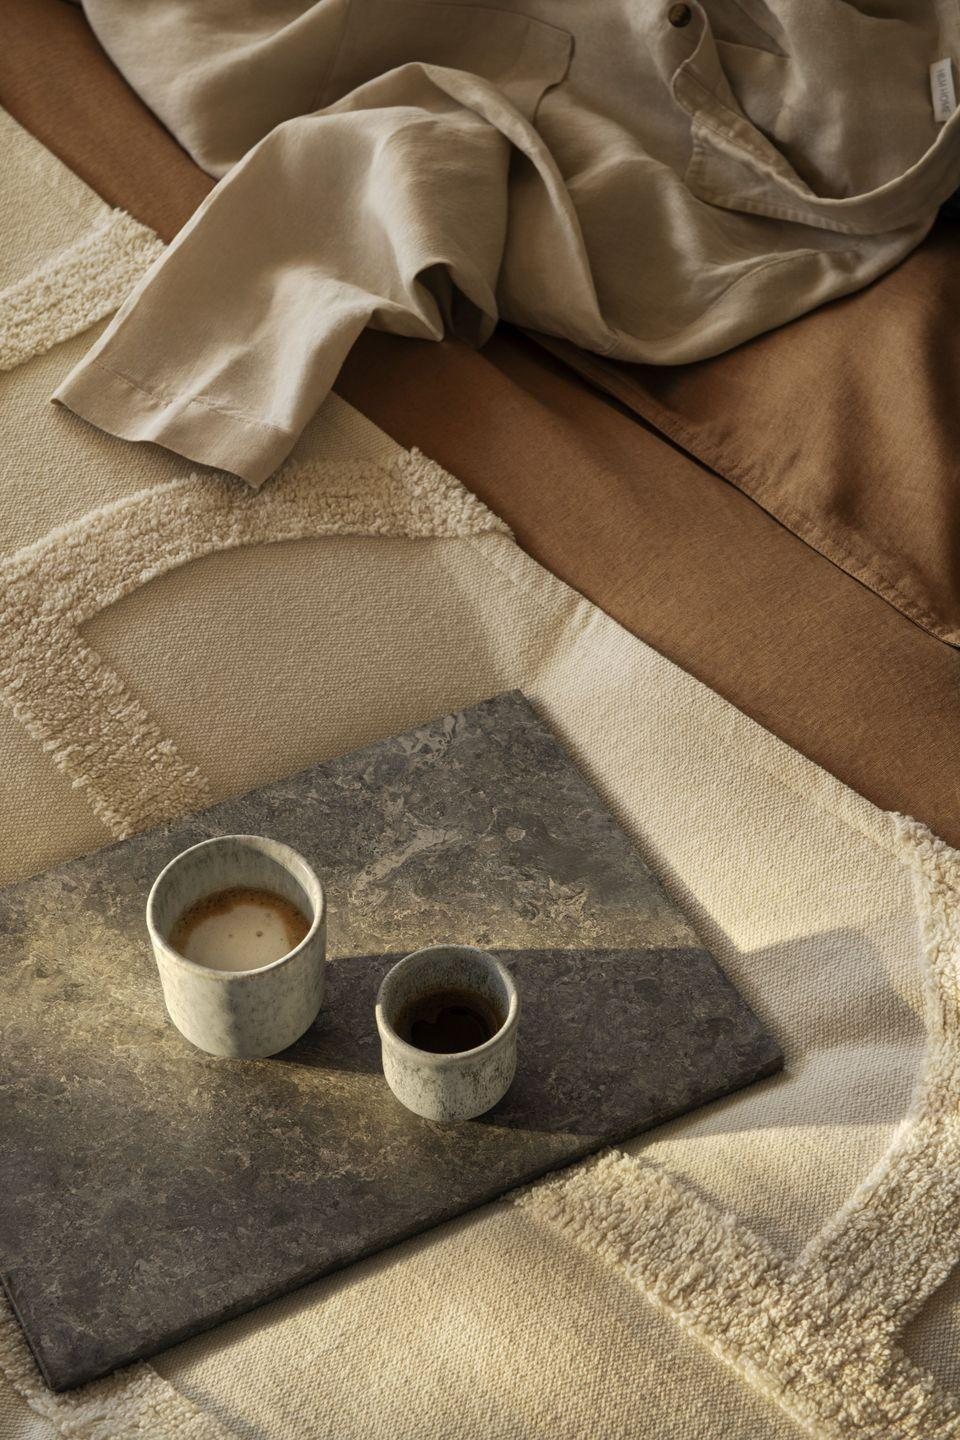 <p>Wake your loved ones in the morning with the scent of fresh coffee served in a beautiful ceramic mug. The neutral, natural tones will offset the calming autumnal hues.</p>